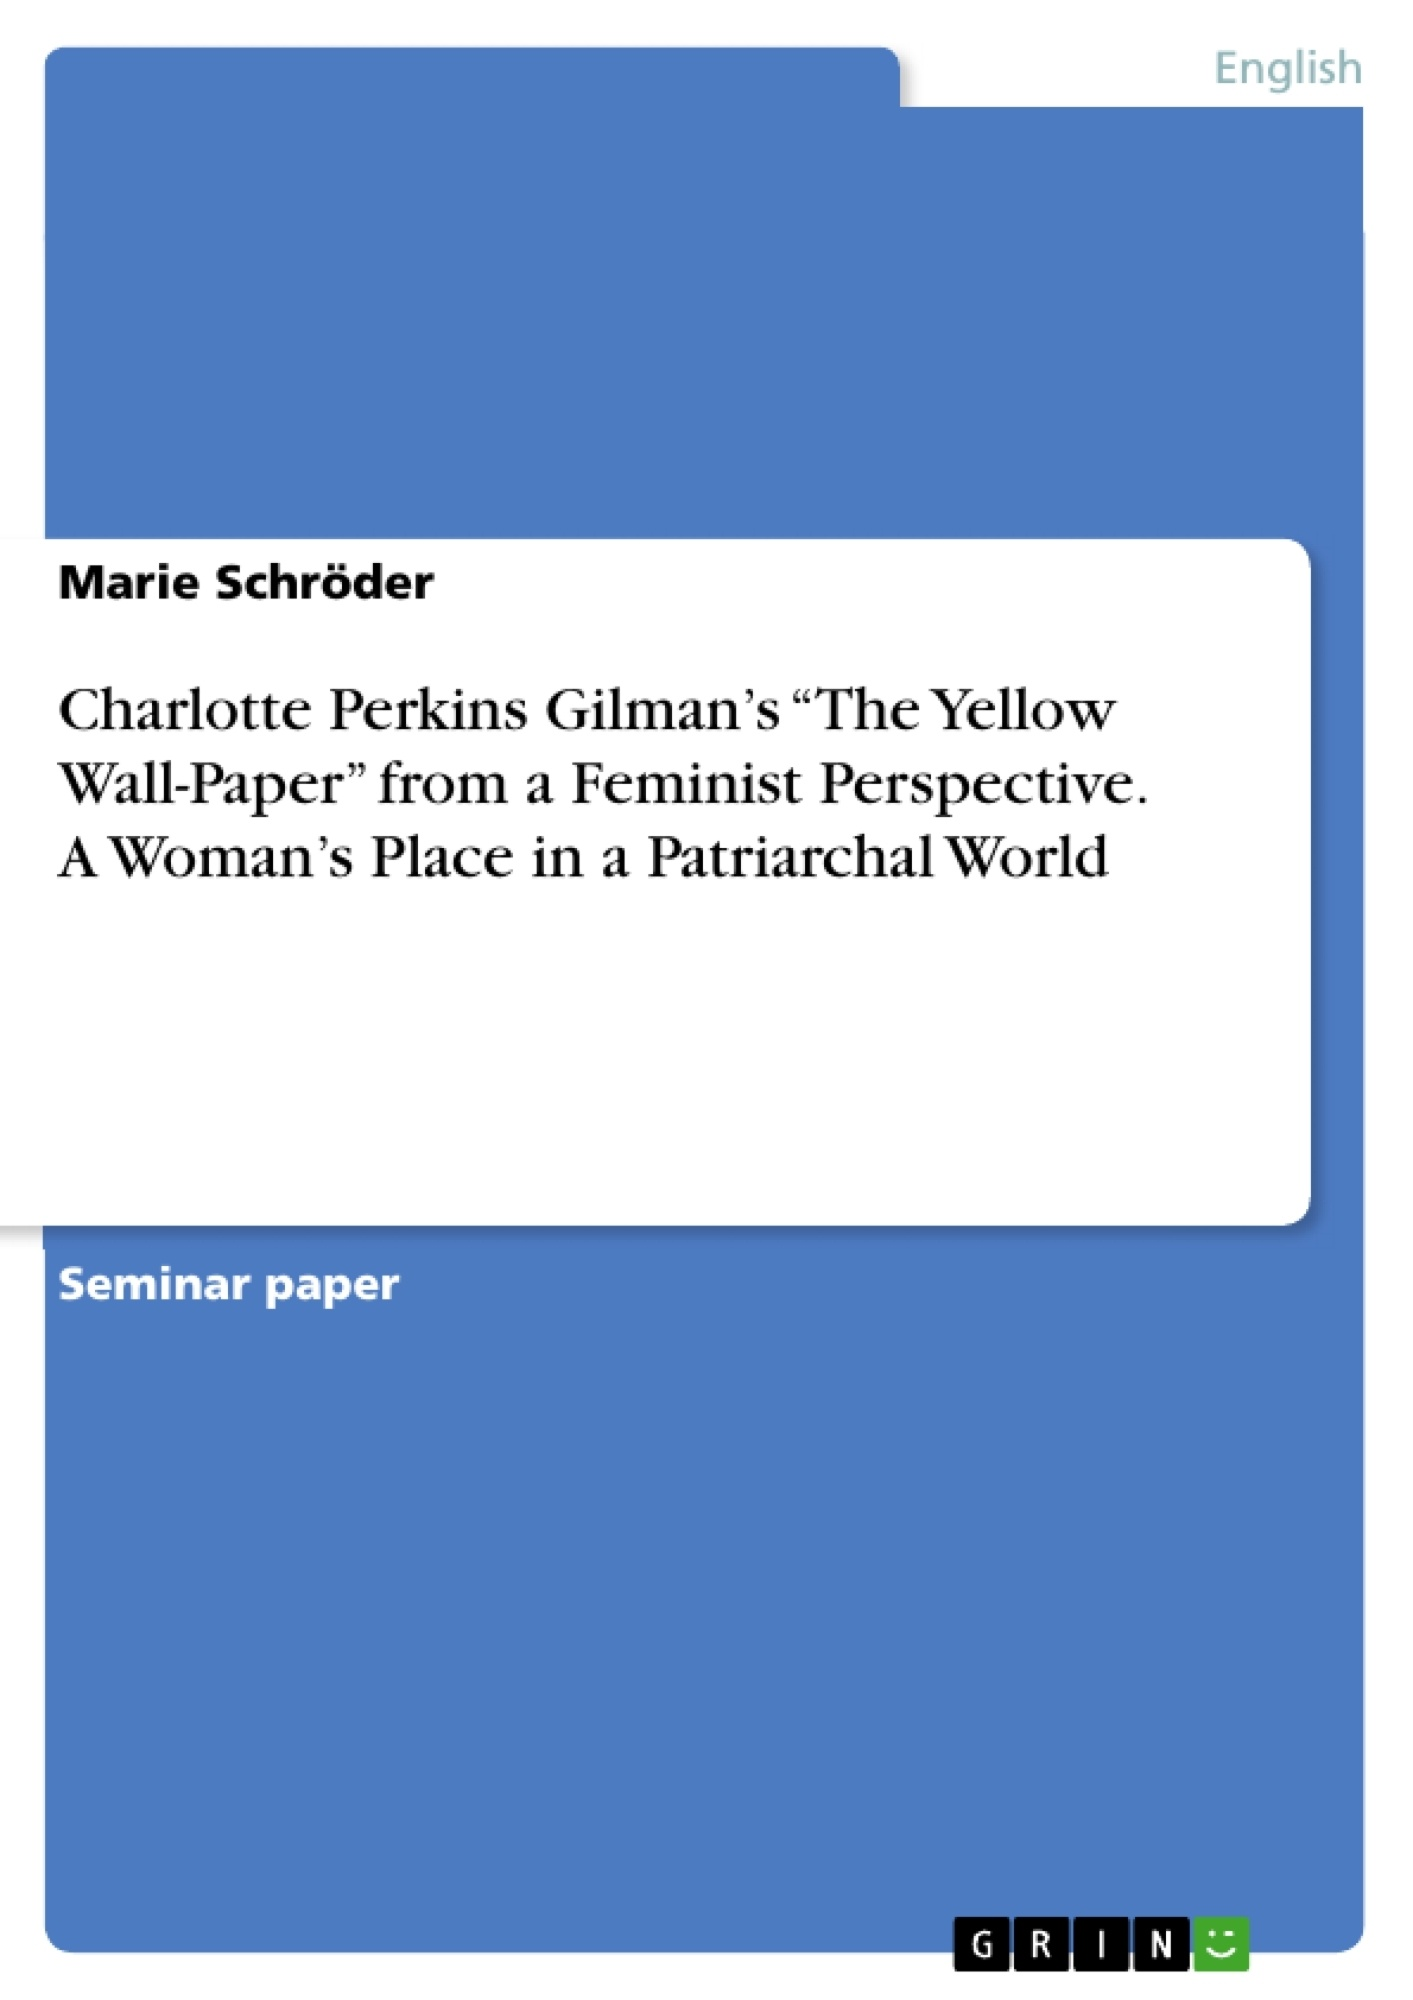 """Title: Charlotte Perkins Gilman's """"The Yellow Wall-Paper"""" from a Feminist Perspective. A Woman's Place in a Patriarchal World"""